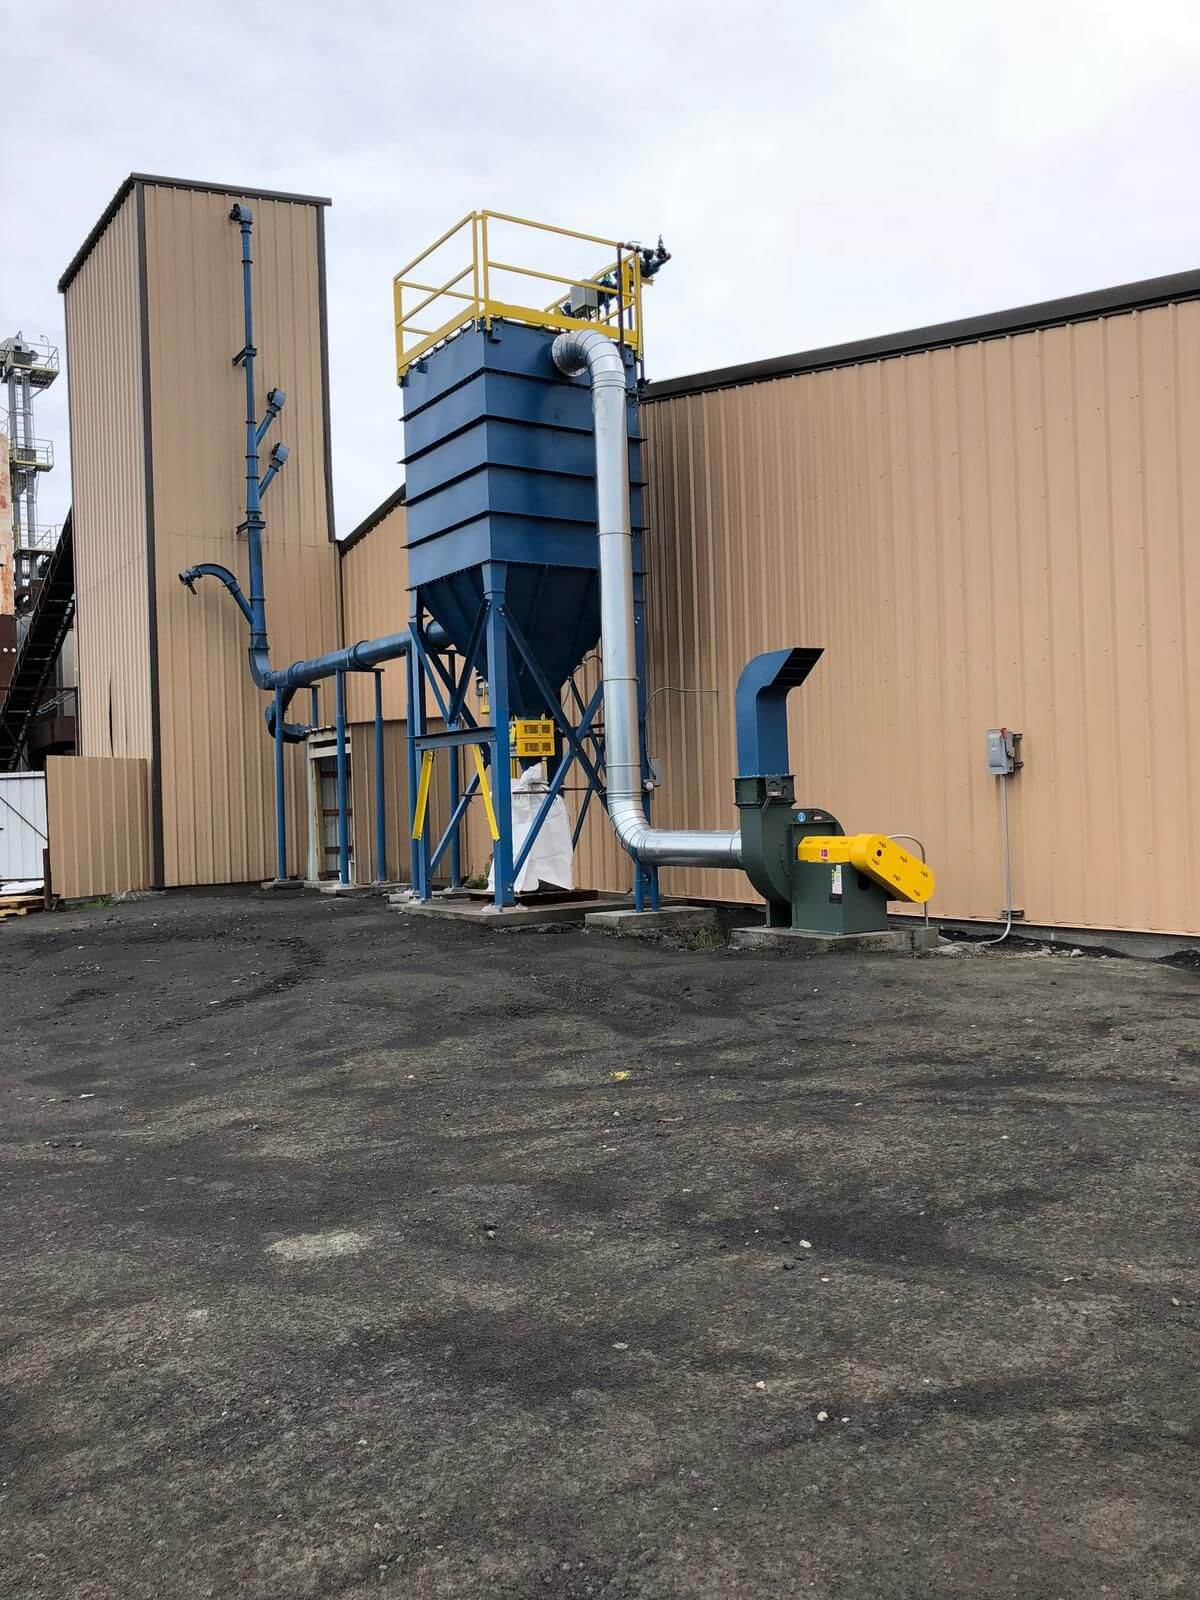 La Cygne's updated bagging operations' new dust collection system